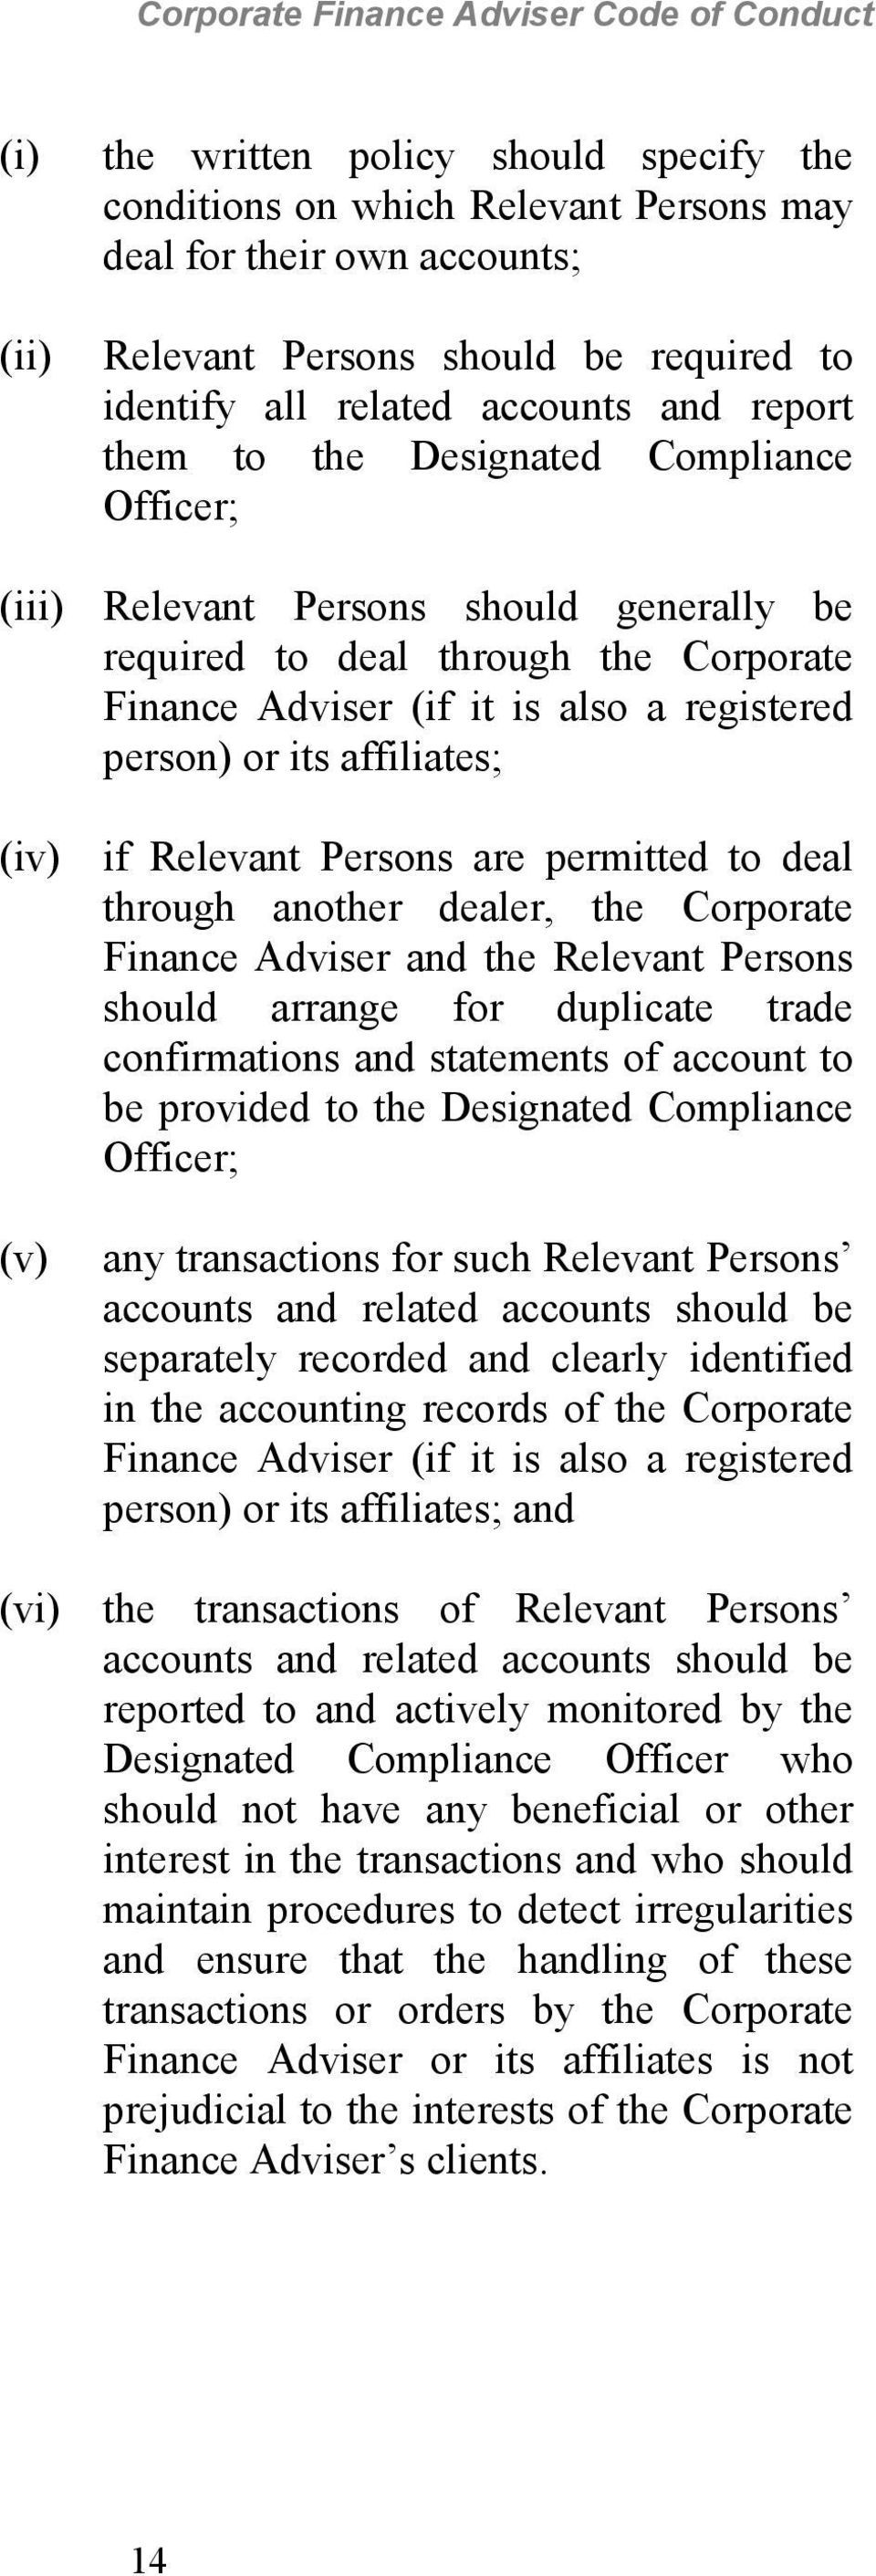 (iv) if Relevant Persons are permitted to deal through another dealer, the Corporate Finance Adviser and the Relevant Persons should arrange for duplicate trade confirmations and statements of